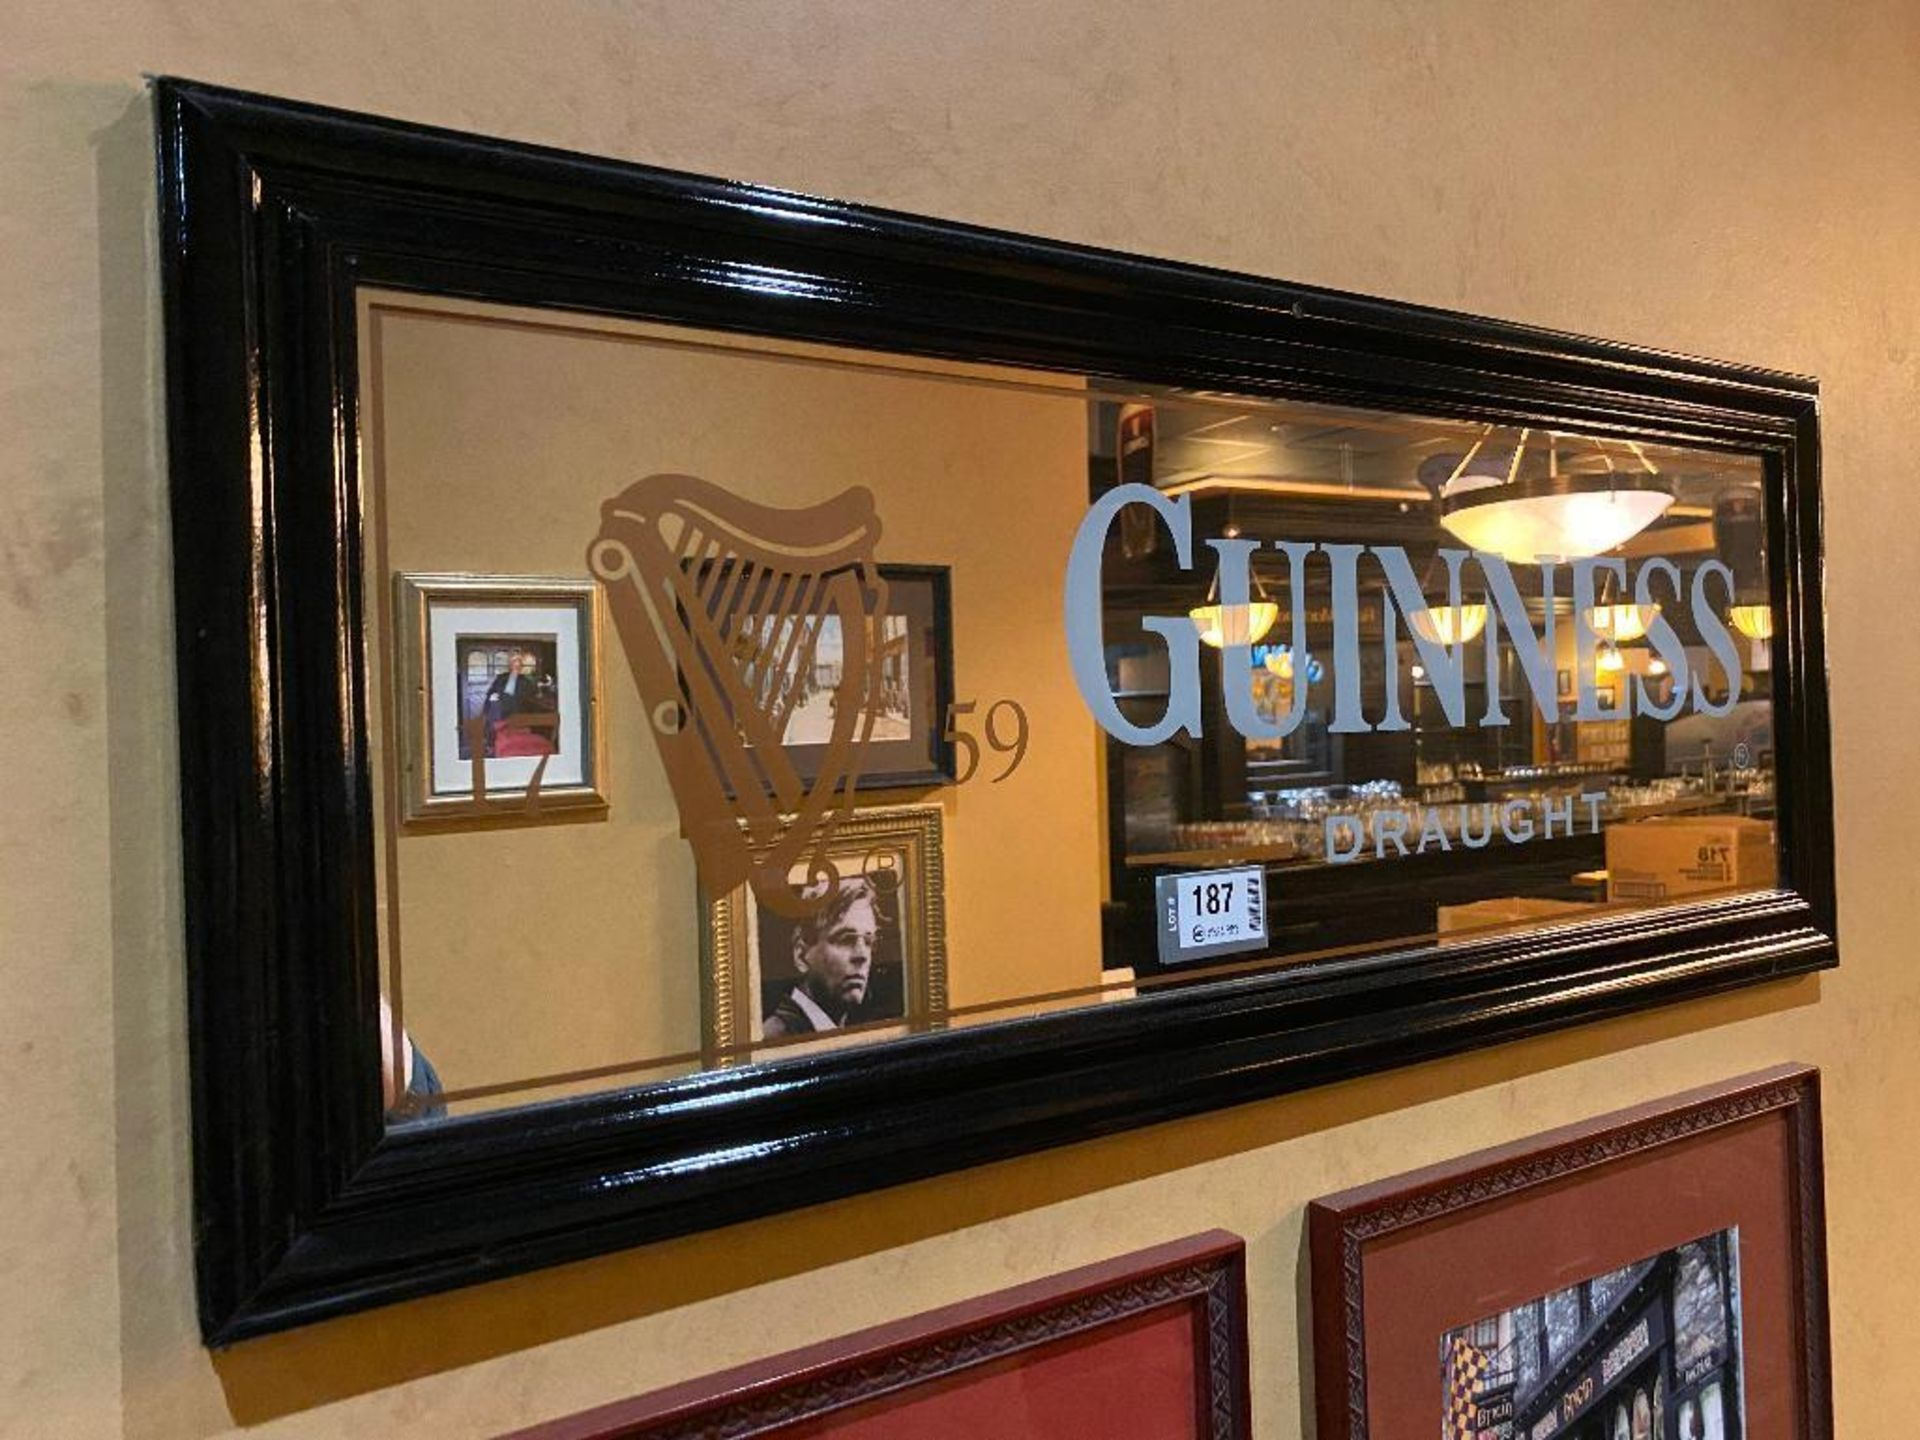 LOT OF (3) FRAMED MEMORABILIA PHOTOS & (1) GUINNESS MIRROR - NOTE: REQUIRES REMOVAL FROM WALL, PLEAS - Image 3 of 5